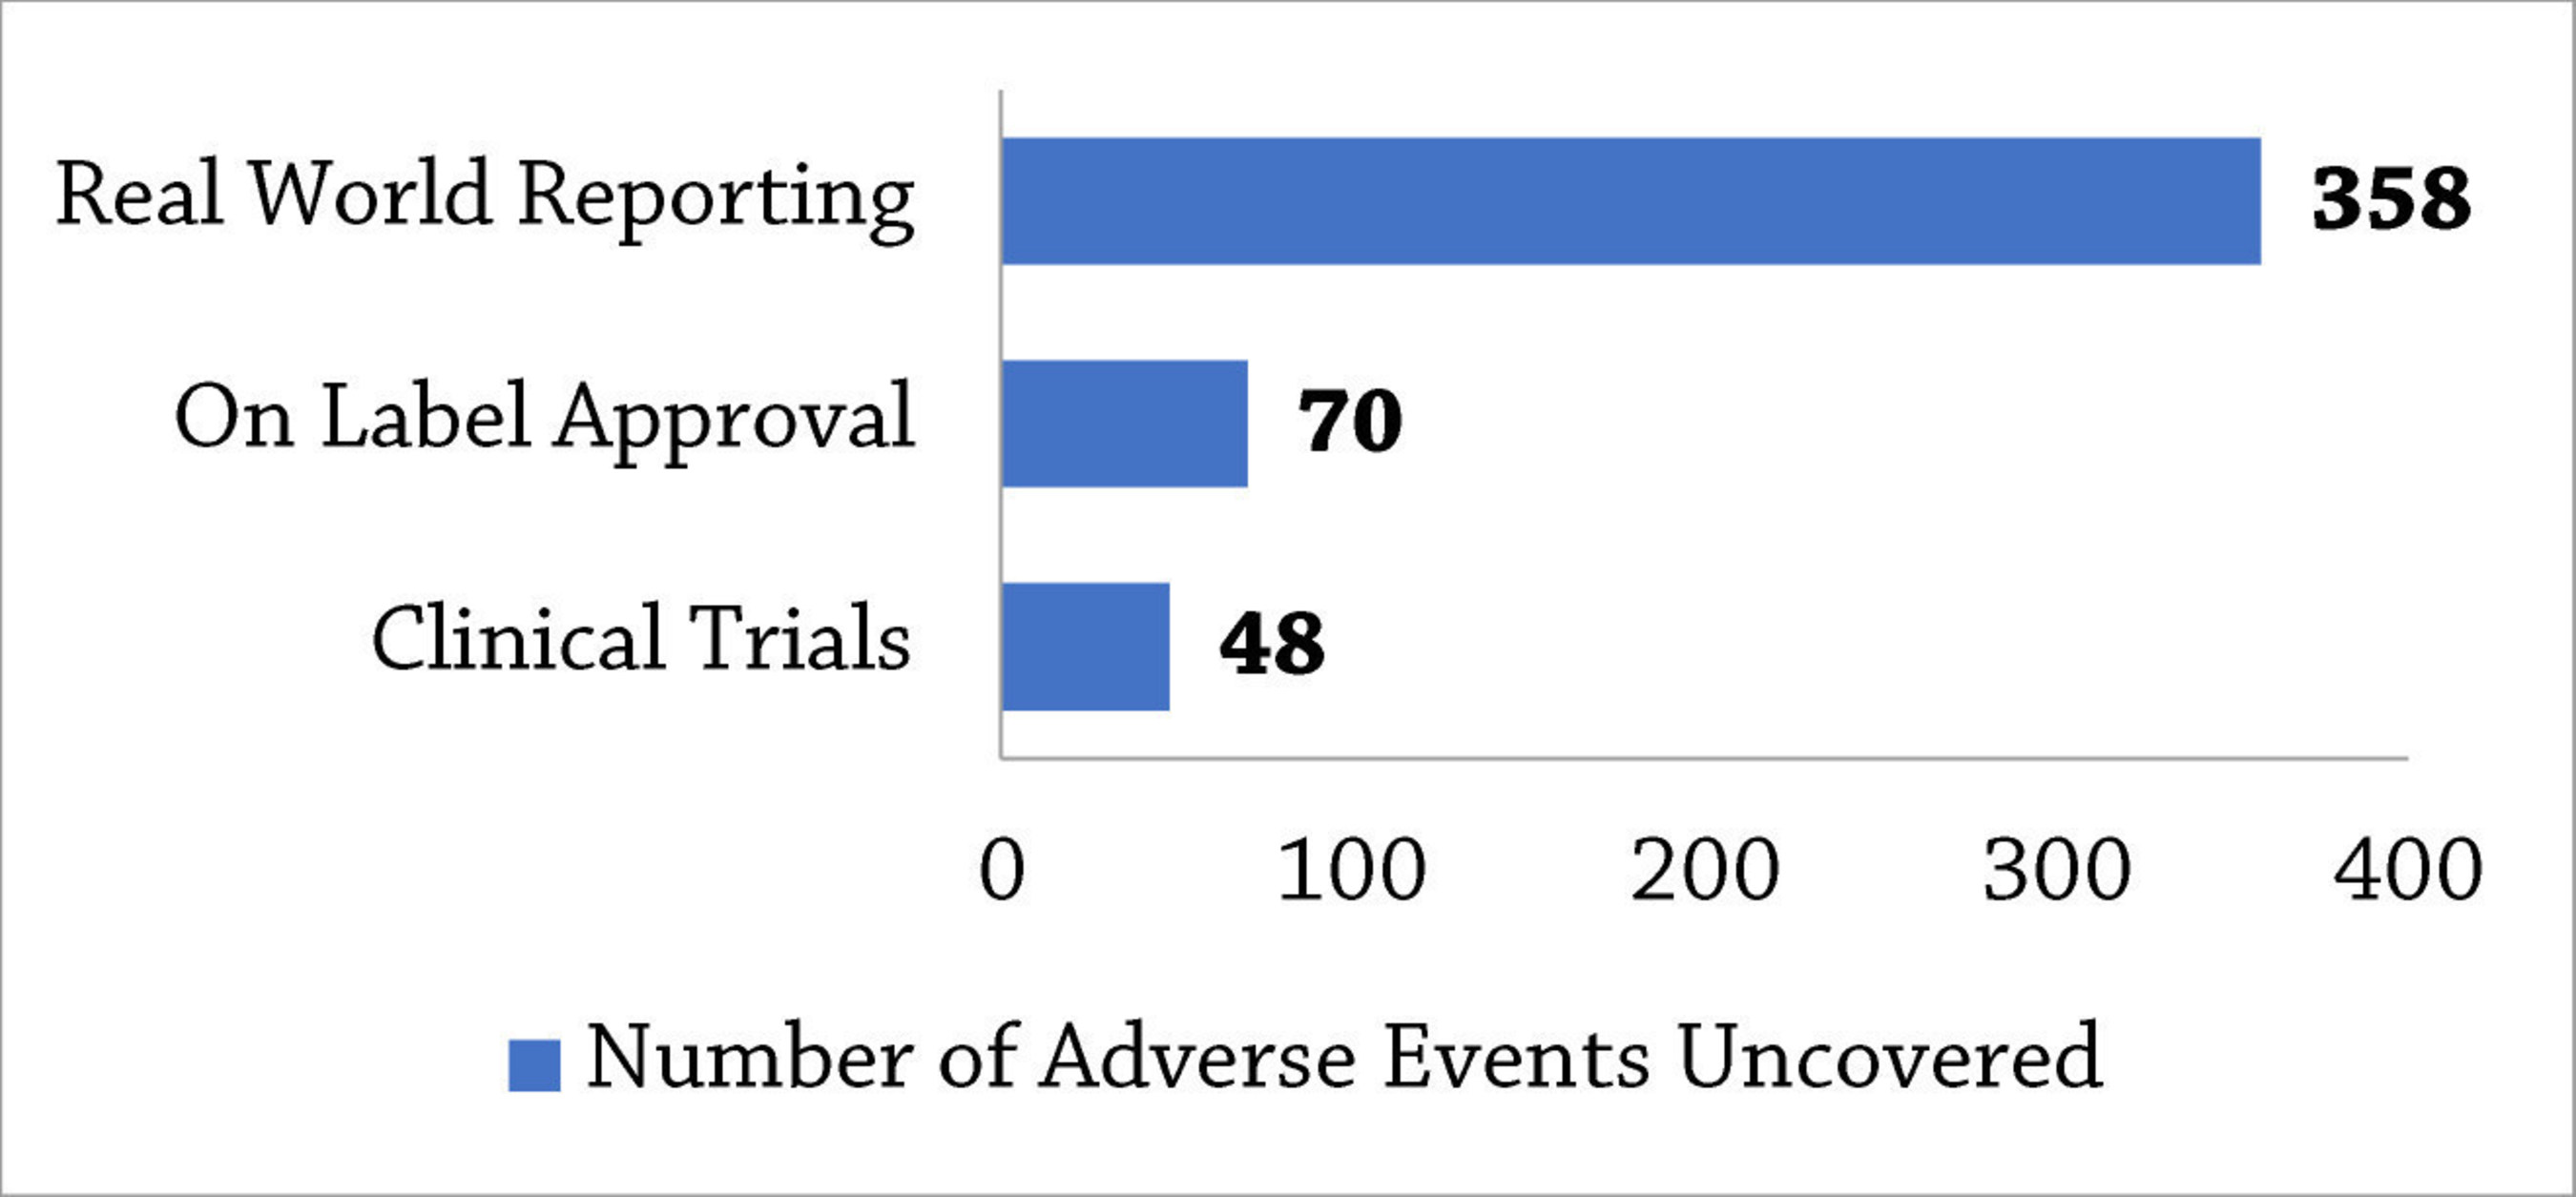 """Sources: Data from ClinicalTrials.gov; data from FDA Adverse Event Reporting System (FAERS) via AdverseEvents Explorer; Duke, J., Friedlin, J., Ryan, P. (2011) A quantitative analysis of adverse events and """"overwarning"""" in drug labeling. Arch Intern Med. 171(10):944-6."""